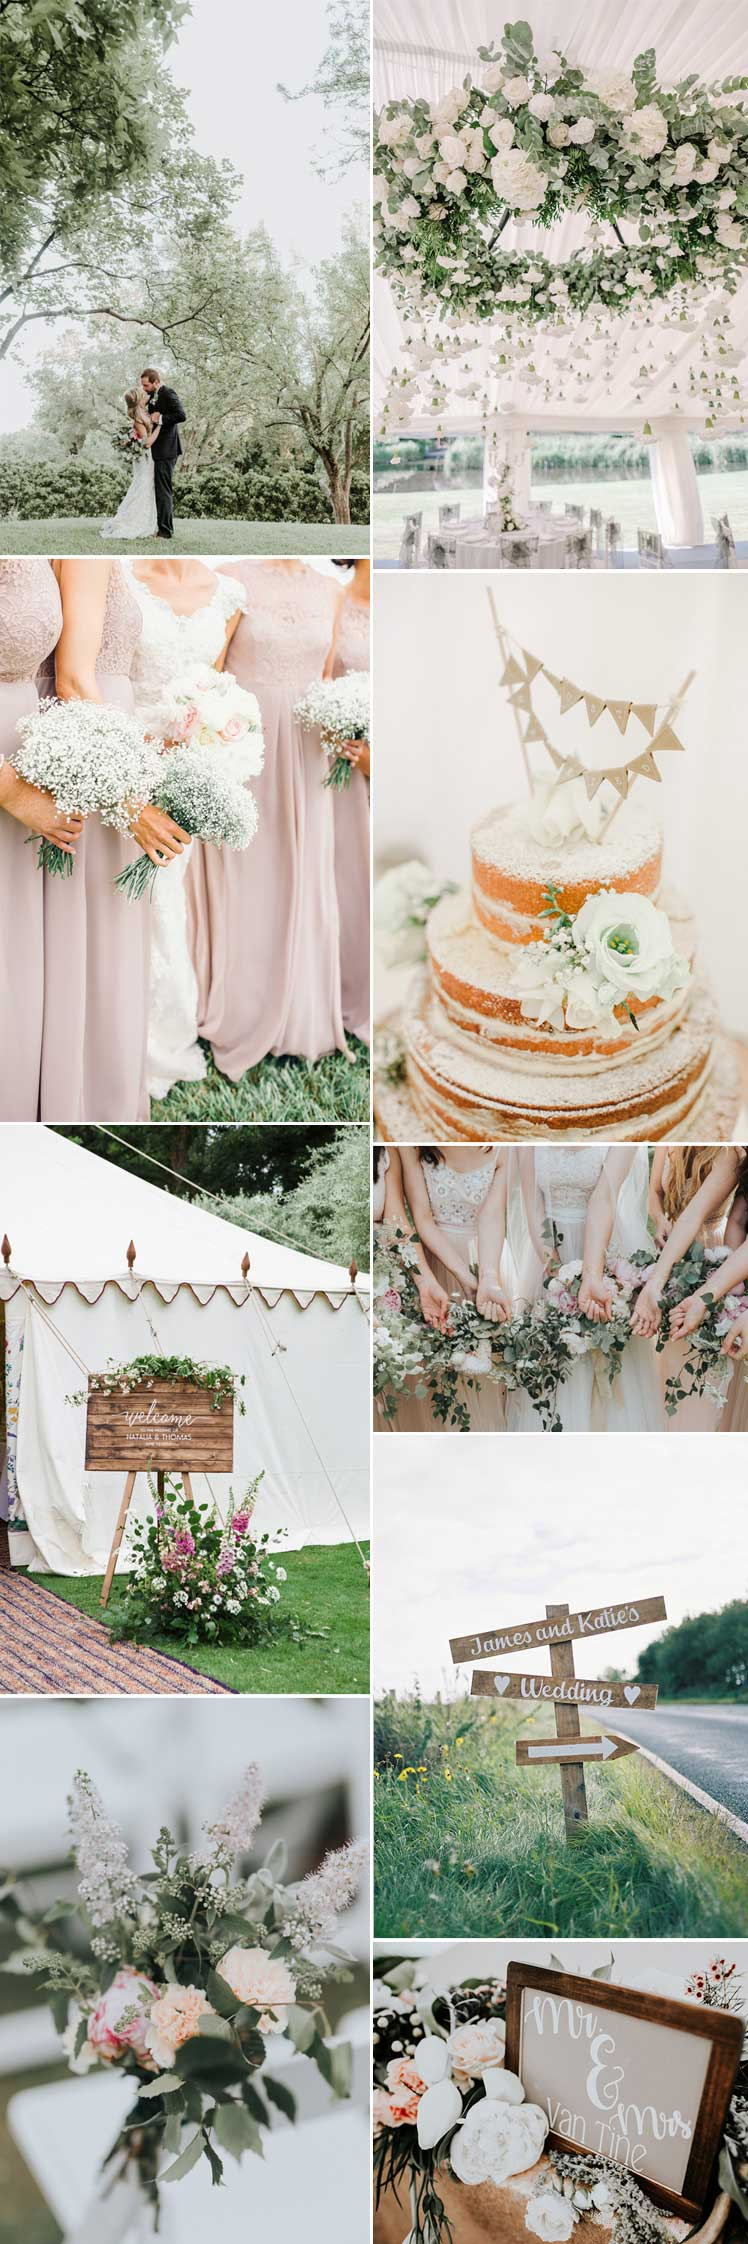 Inspiration for a modern country garden wedding day